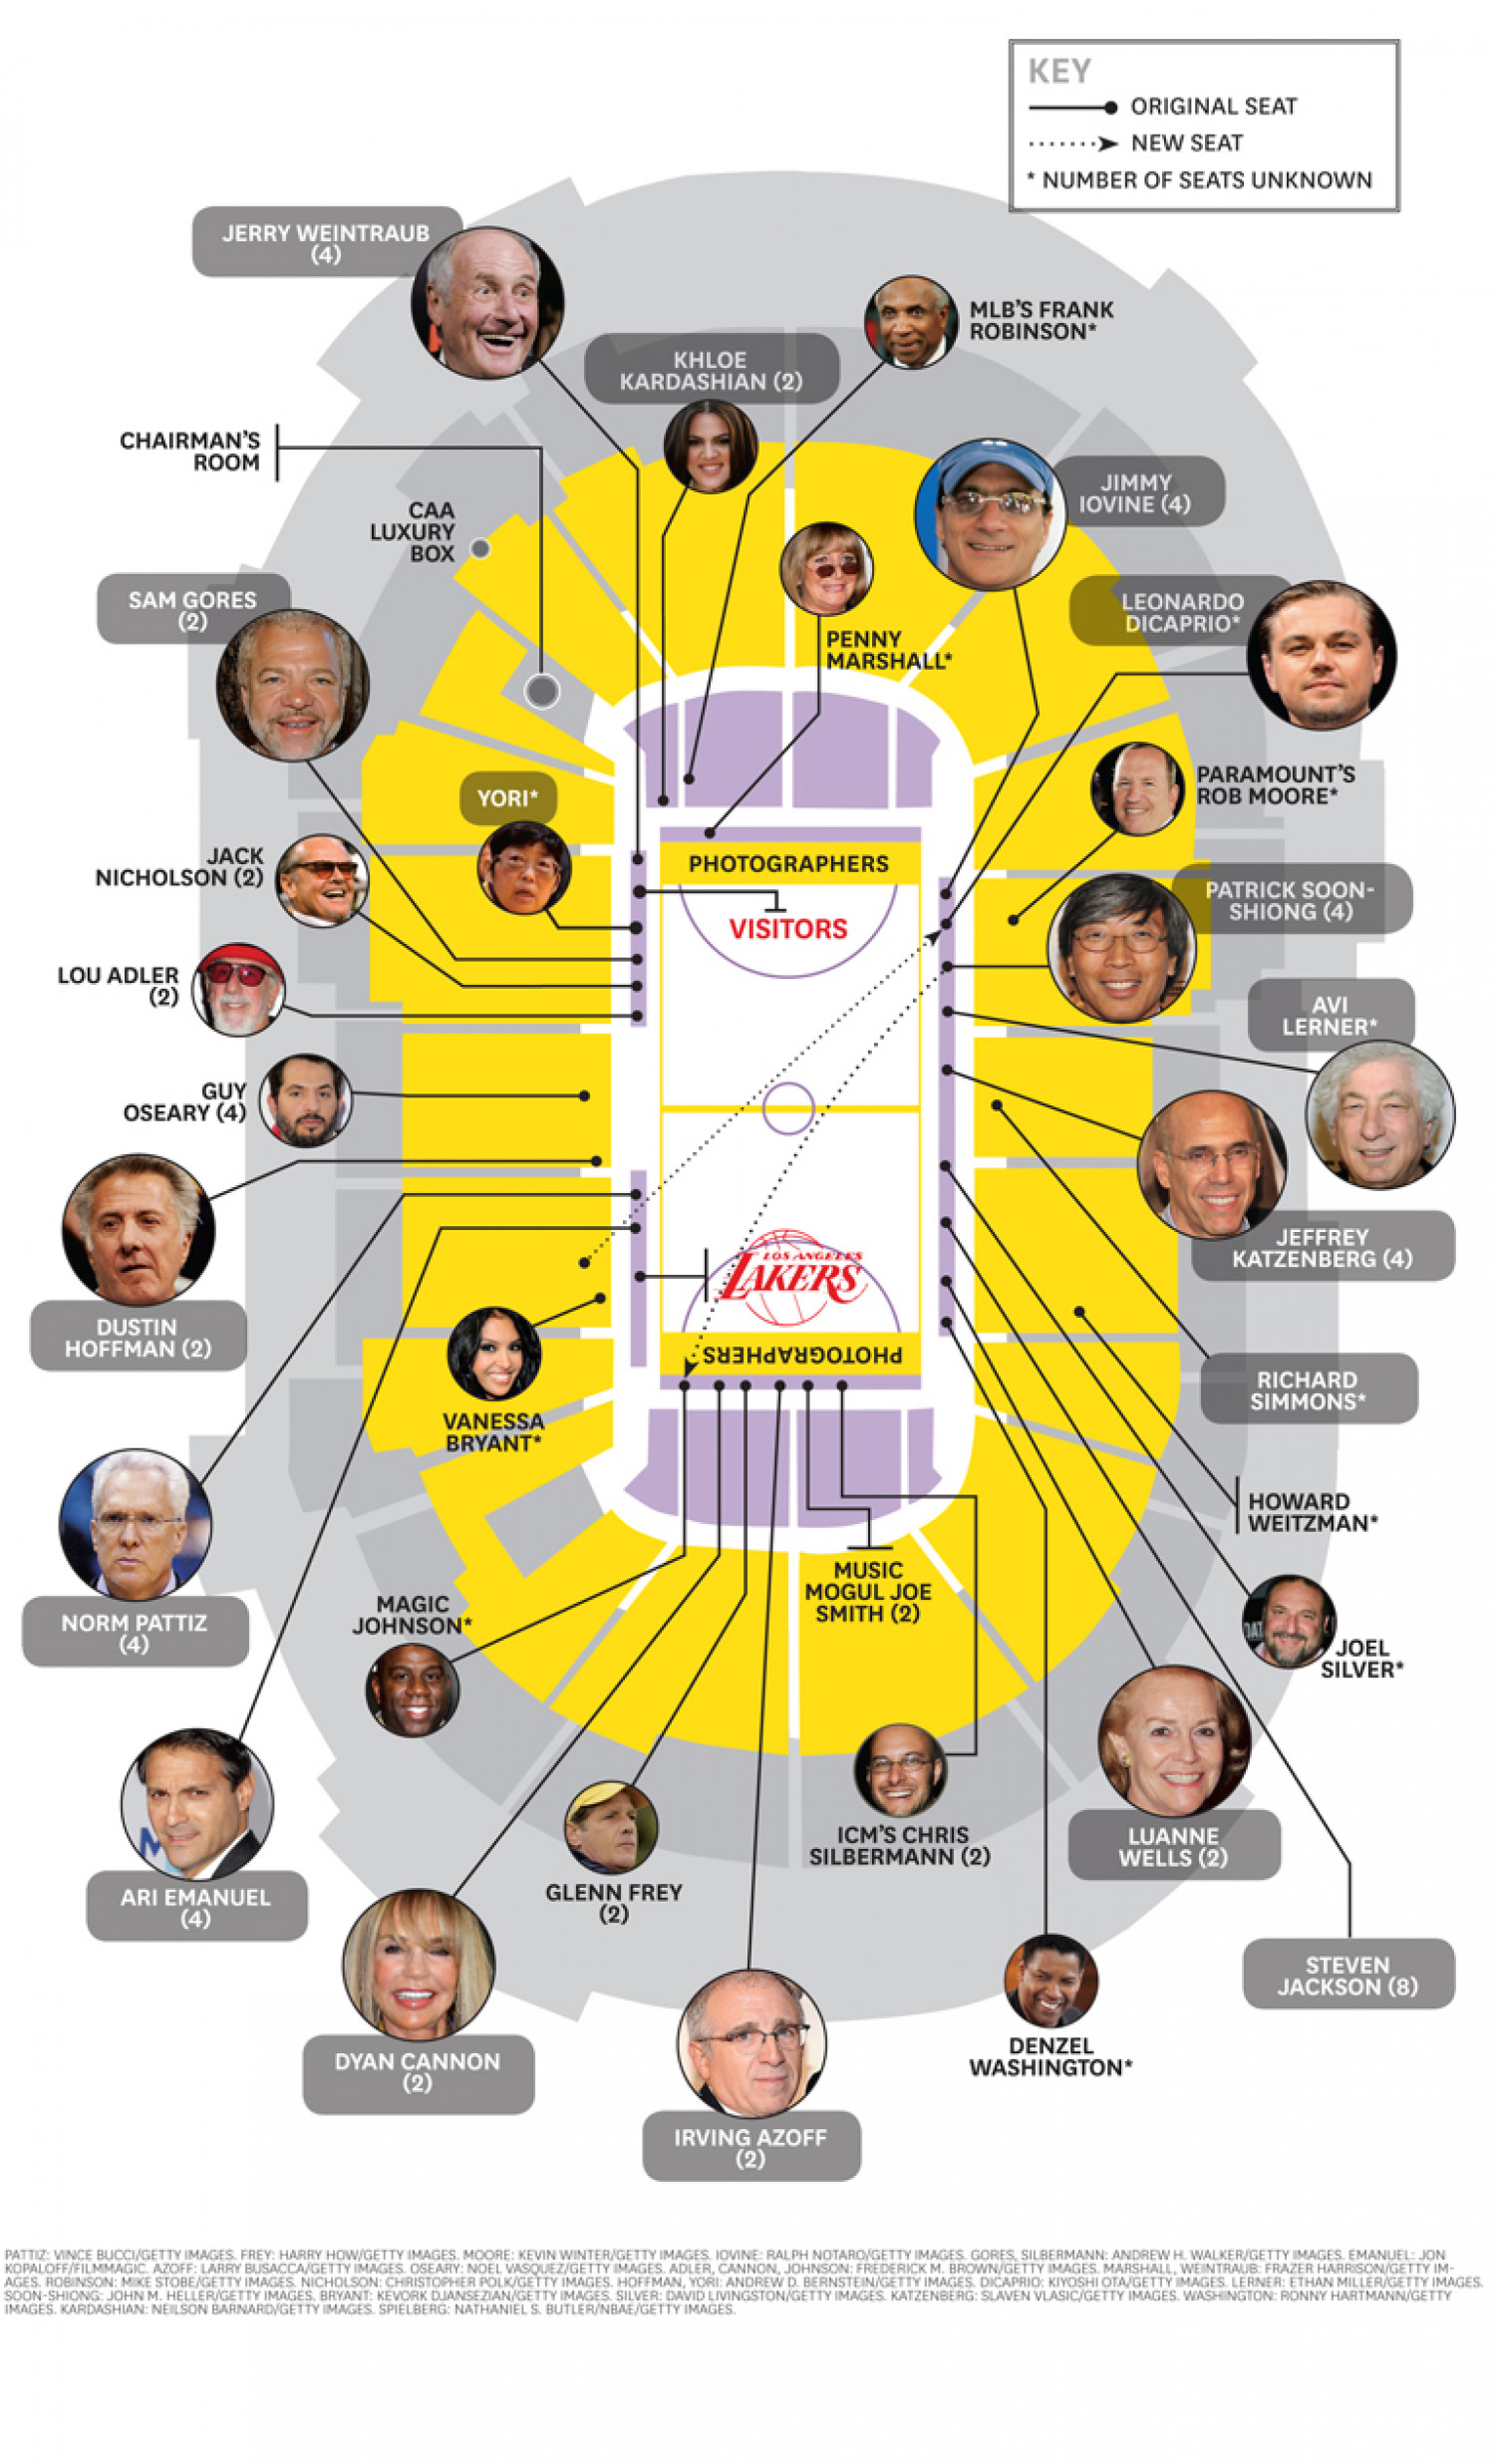 Lakers Games: Who Sits Where (map) | Hollywood Reporter